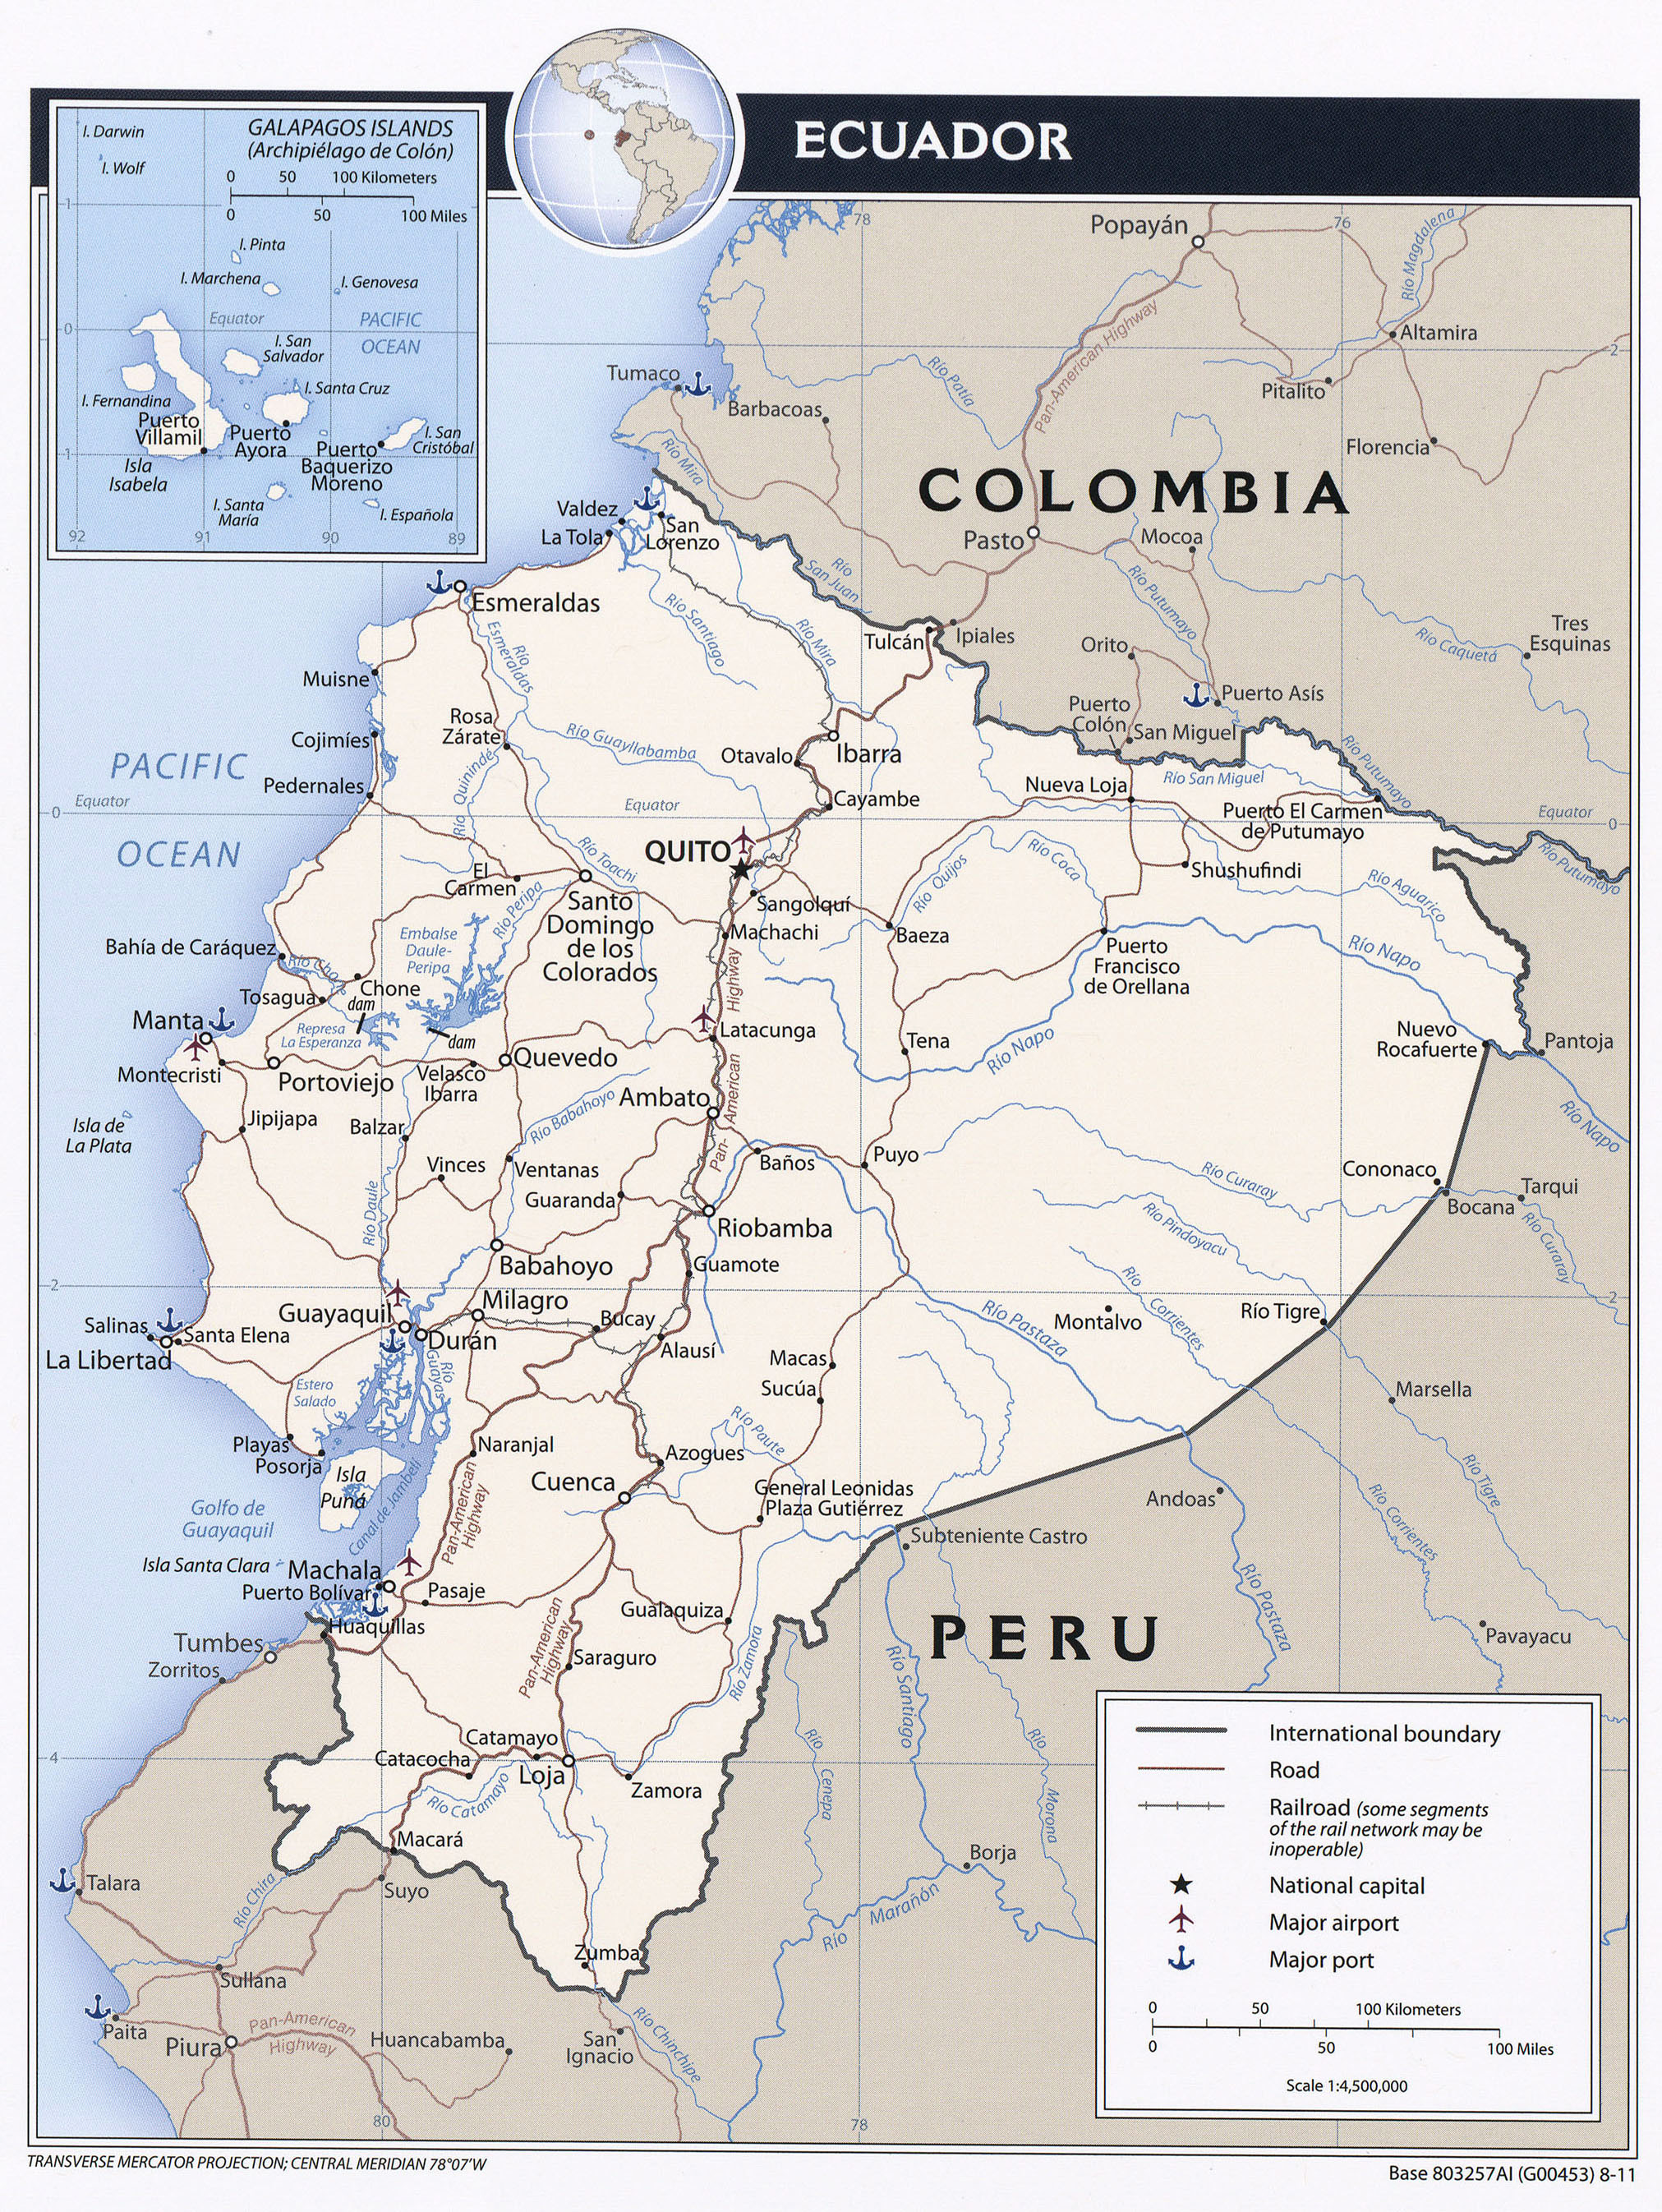 Large Detailed Political Map Of Ecuador With Roads Major Cities And Airports 2011